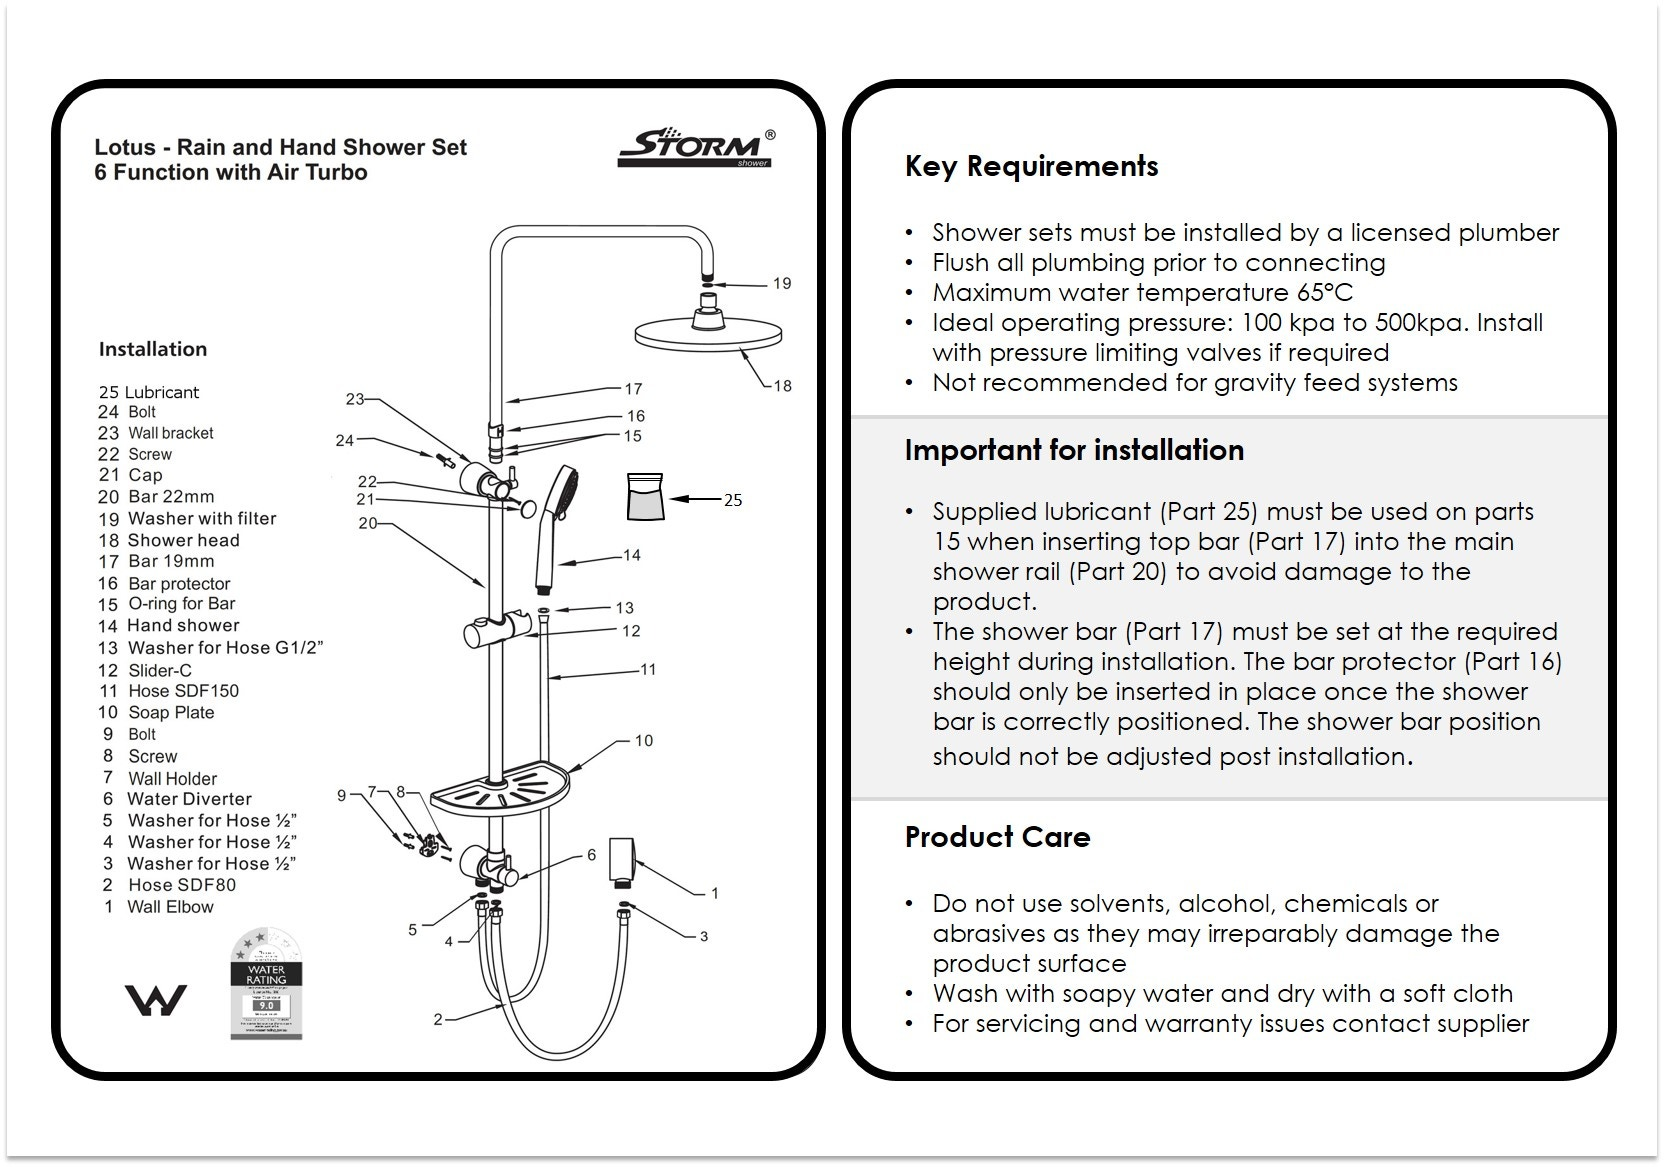 Moen Shower Replacement Parts Manual Guide